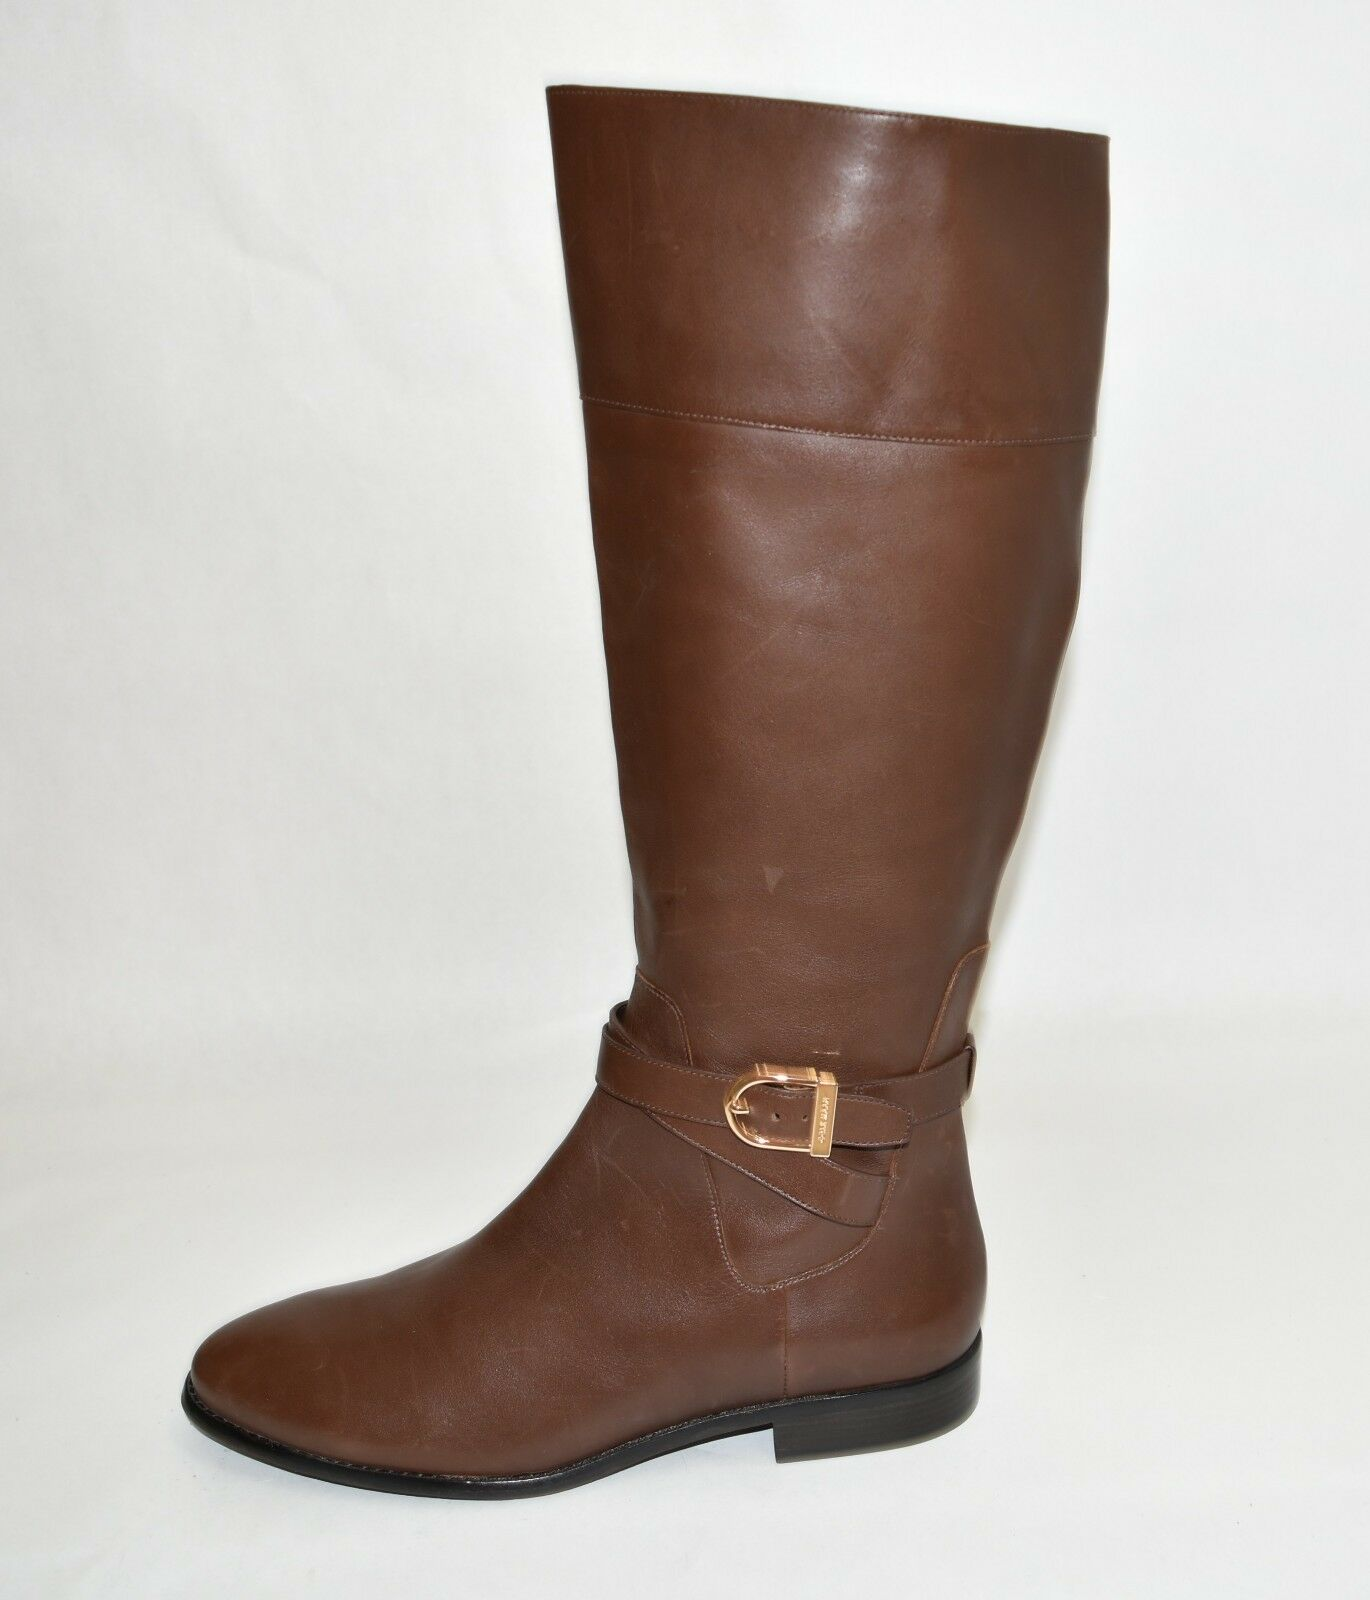 New  Cole Haan Catskills Boot Brown Leather Size Size Size 11  MSRP  348 W00387 T27 47a7f6